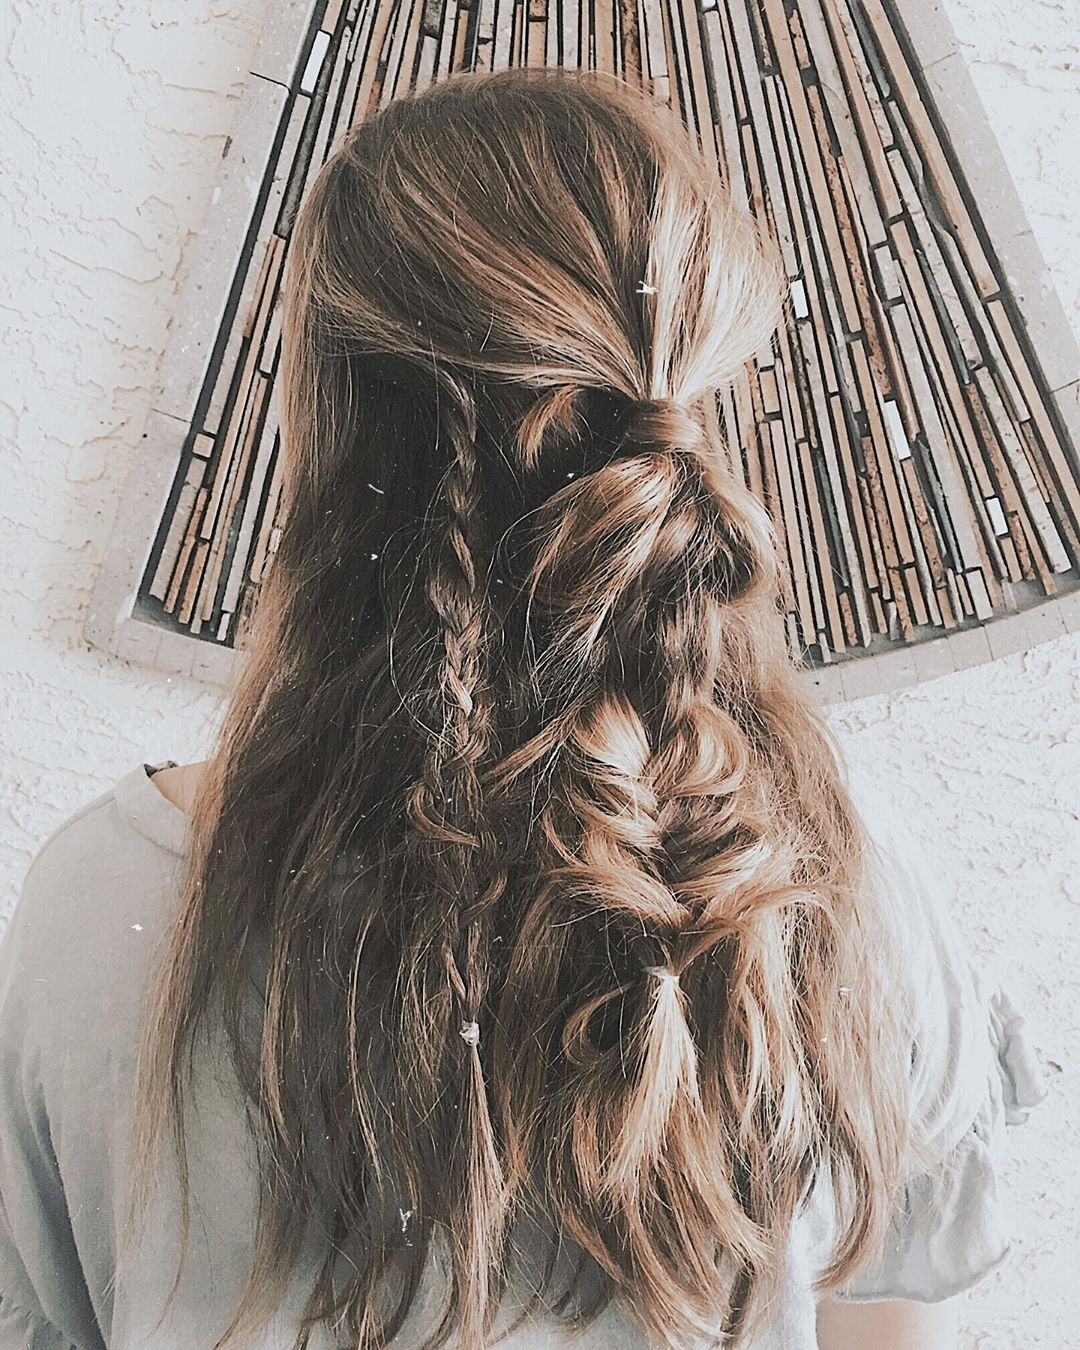 Pulling Your Hair Back Is Never Just Pulling Your Hair Back It Can Have Fast Simple Style Tutorial On This Coming Hair Tutorial Hair Styles Long Hair Styles